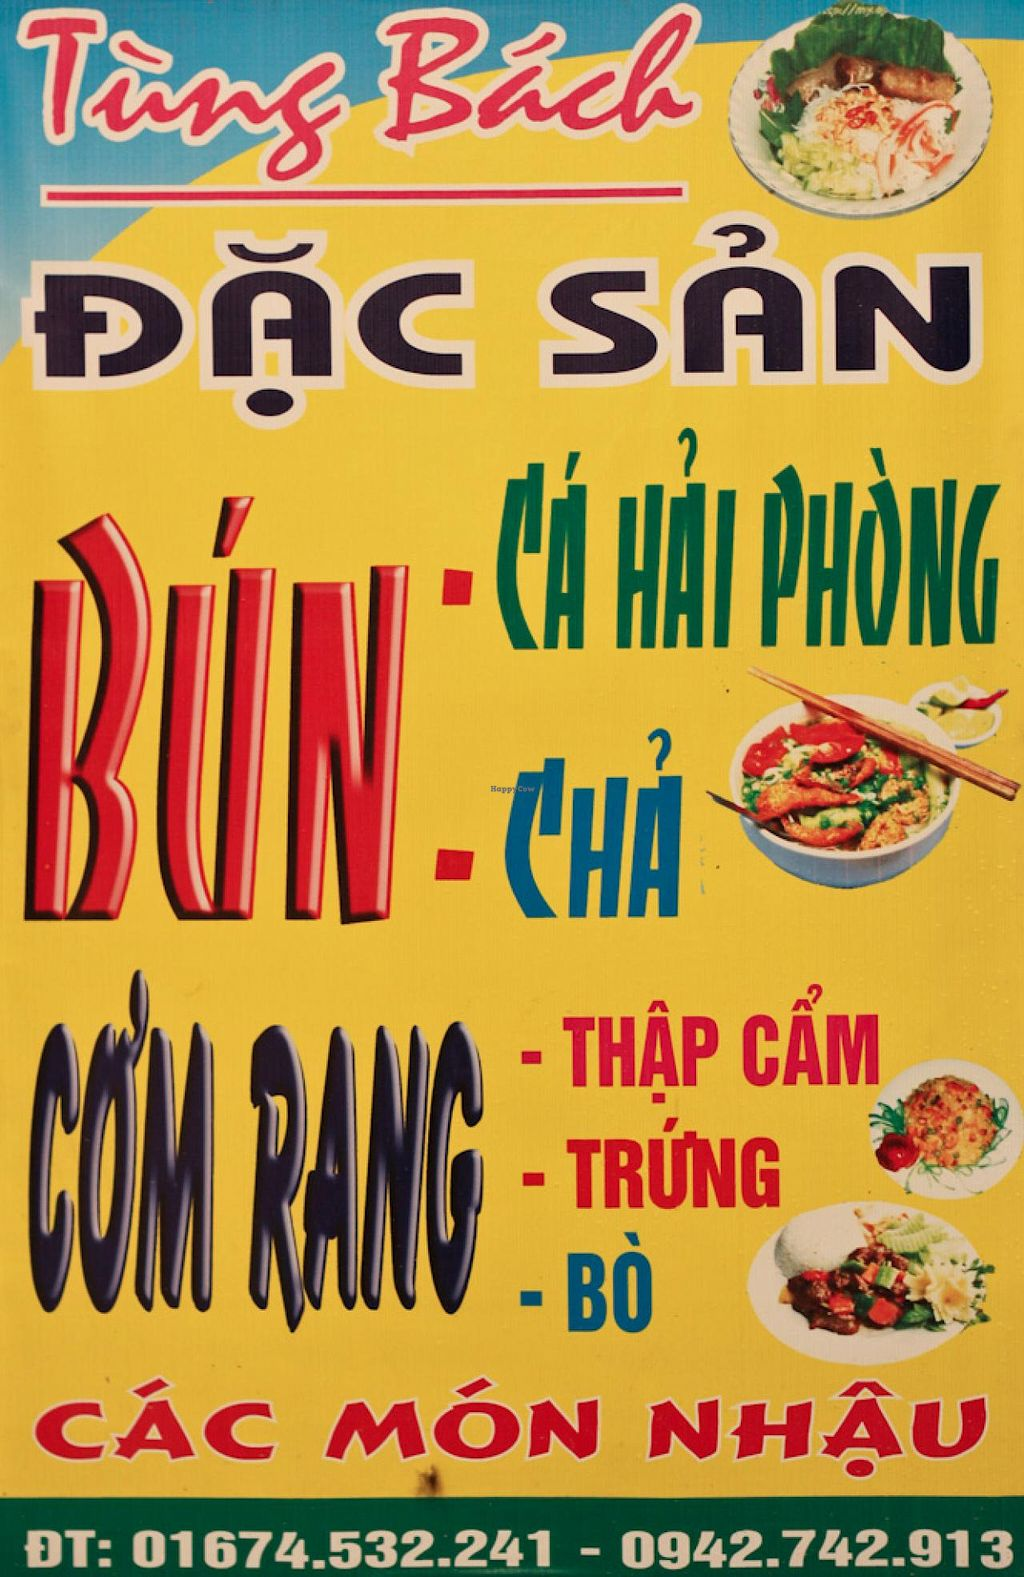 """Photo of Nha Hang Tung Bach  by <a href=""""/members/profile/Ranks42"""">Ranks42</a> <br/>Main Sign <br/> July 7, 2014  - <a href='/contact/abuse/image/48671/73434'>Report</a>"""